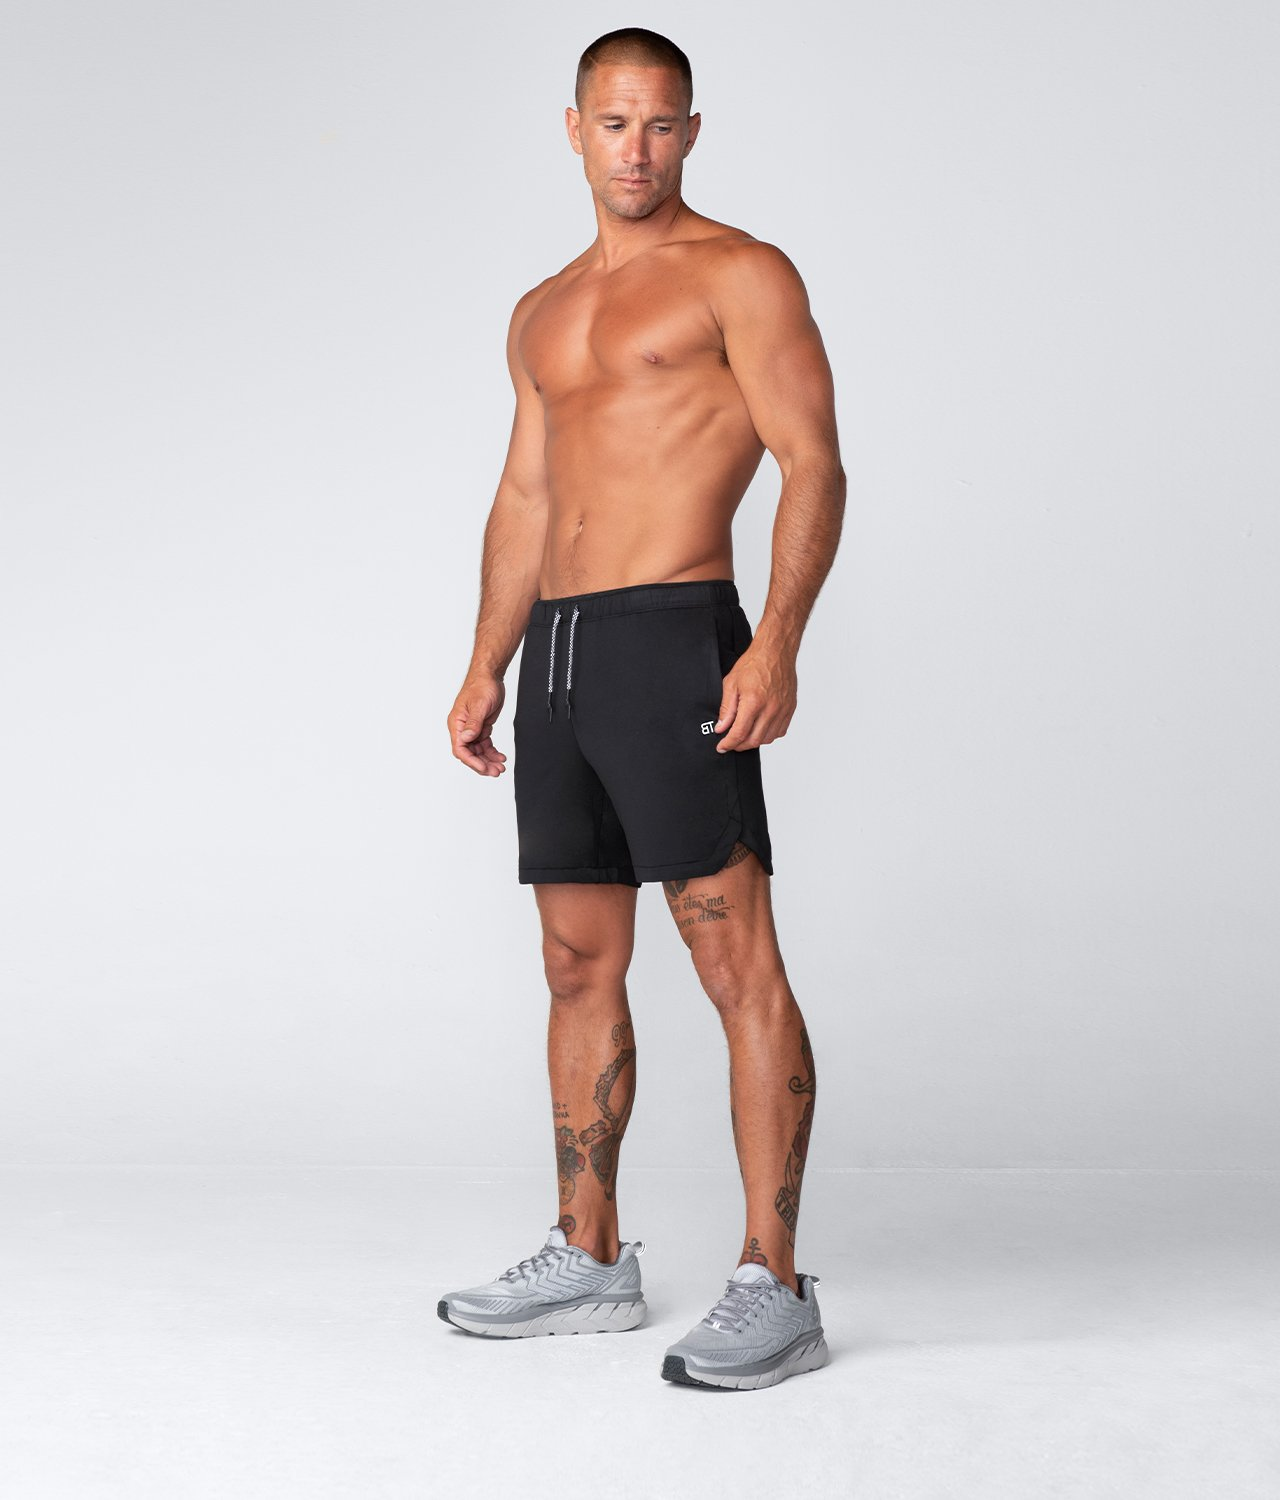 "Born Tough United Kingdom Air Pro™ 7"" Comfortable Ink Black Men's Gym Workout Shorts with Liner"